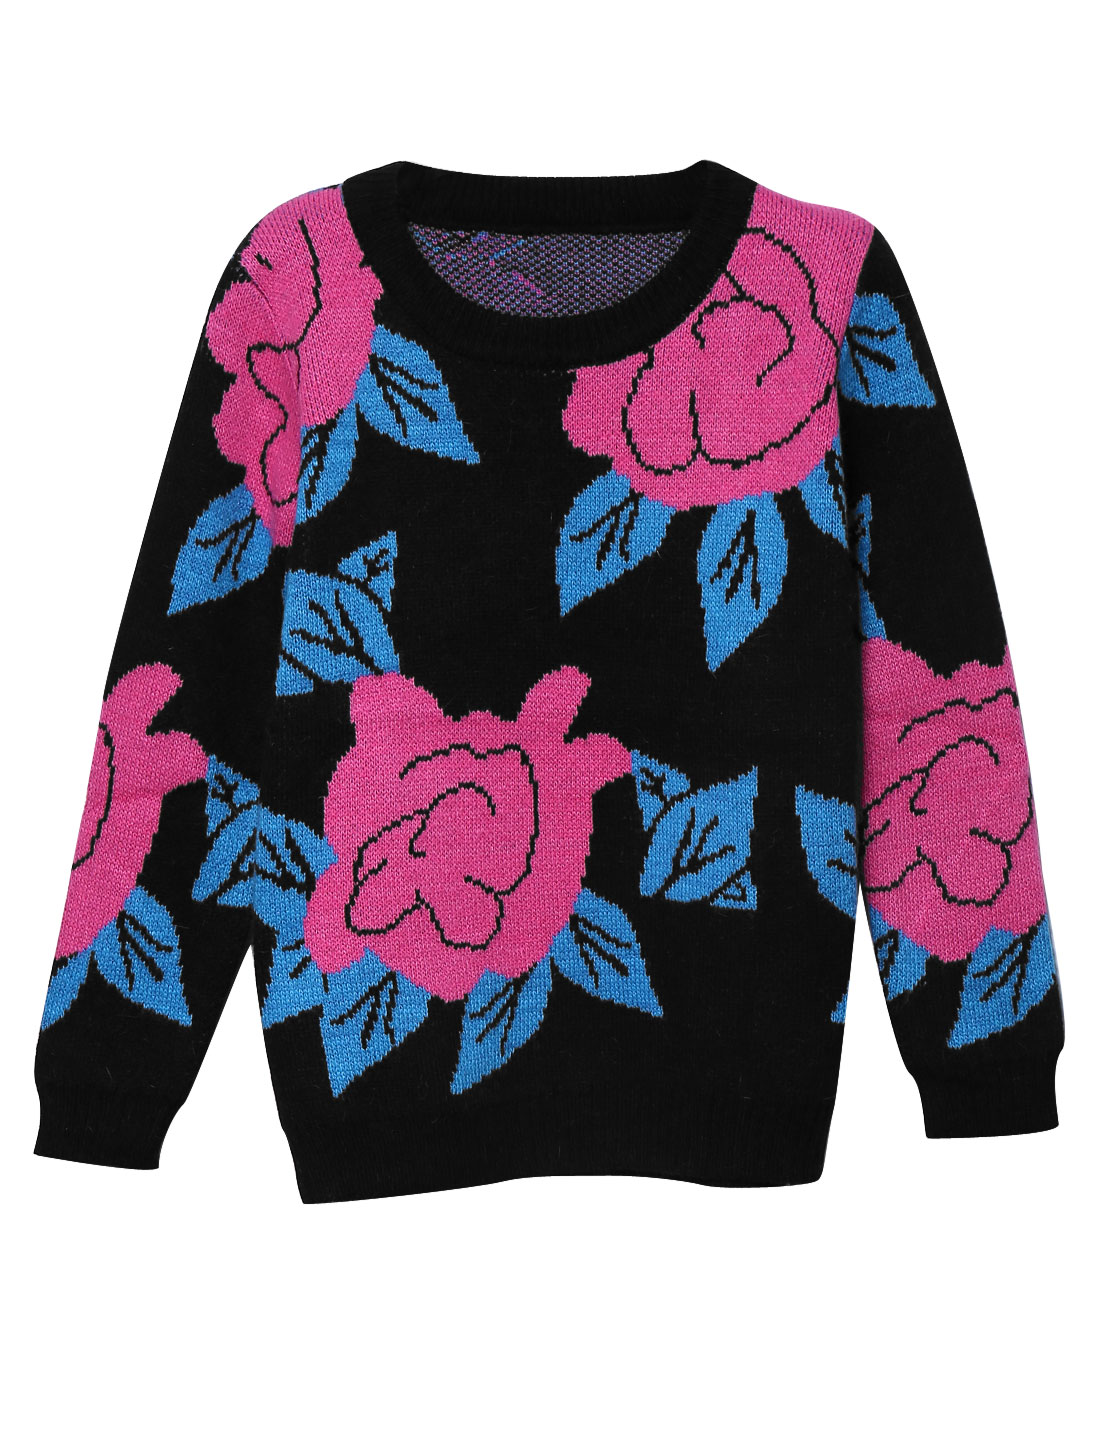 Women Floral Pattern Round Neck Long Sleeve Ribbed Trim Sweater Black XS